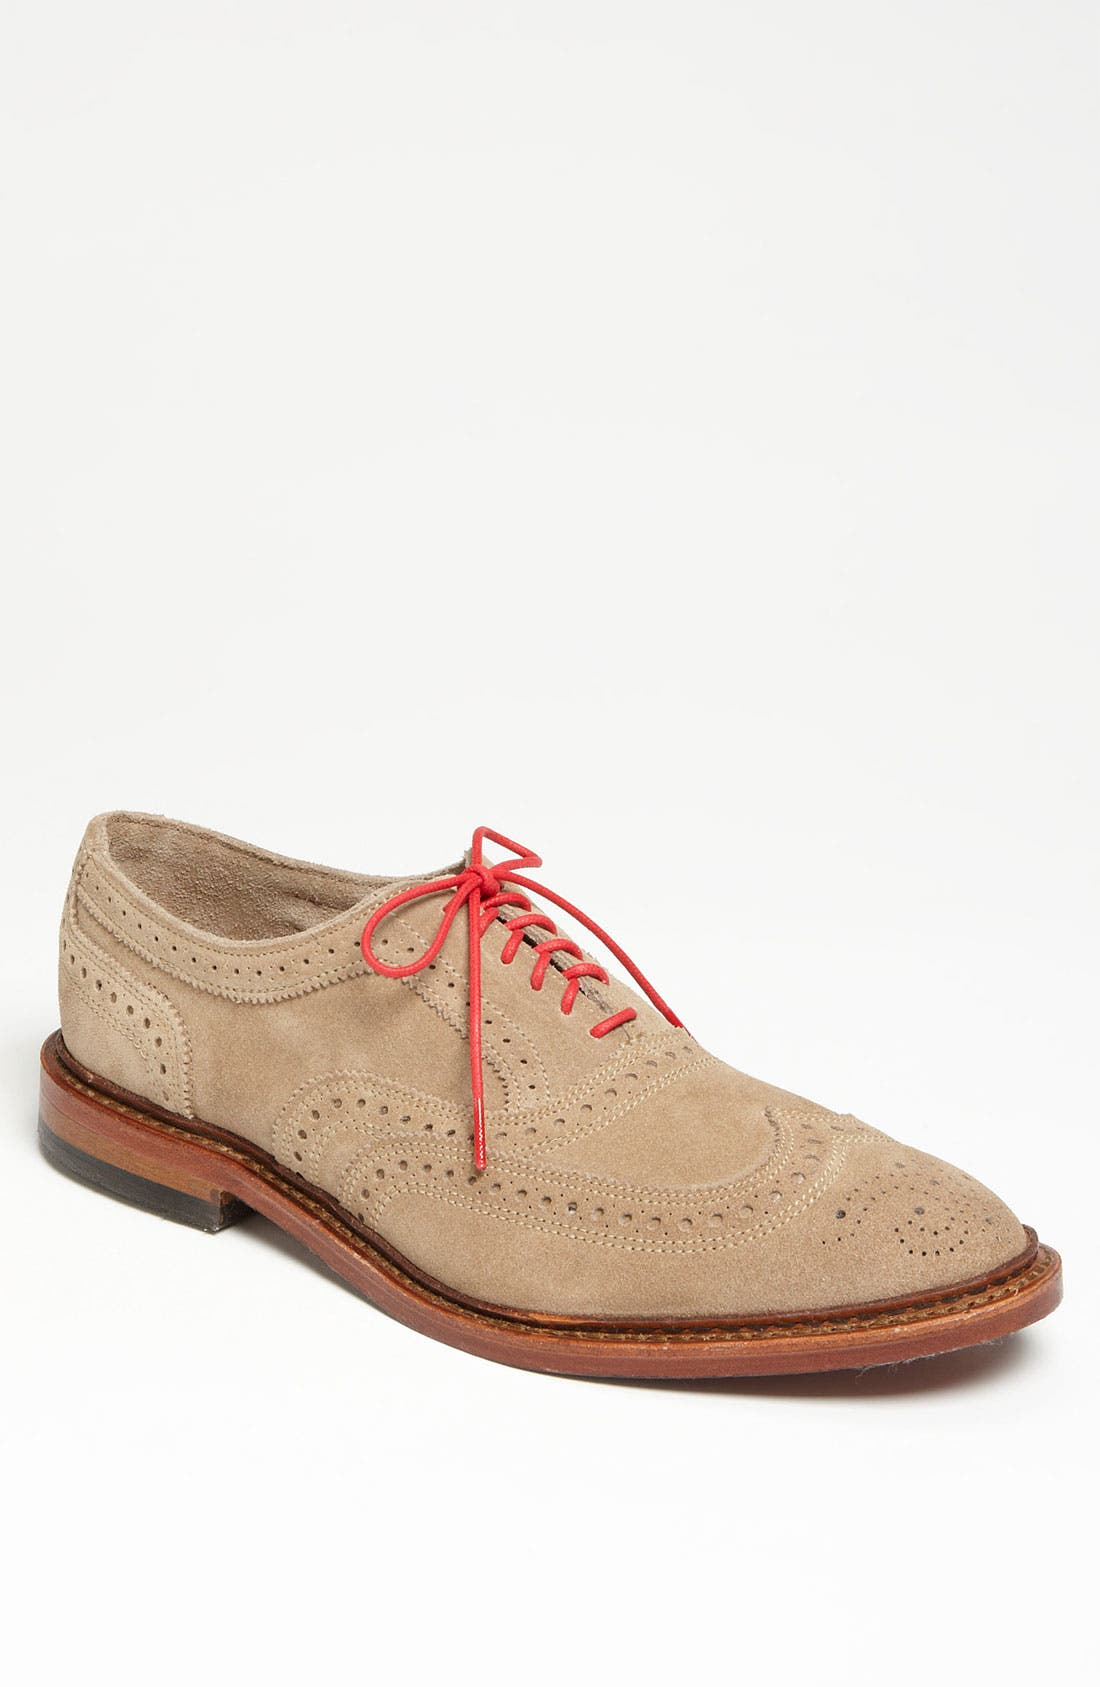 Main Image - Allen Edmonds 'Neumok' Oxford (Men)